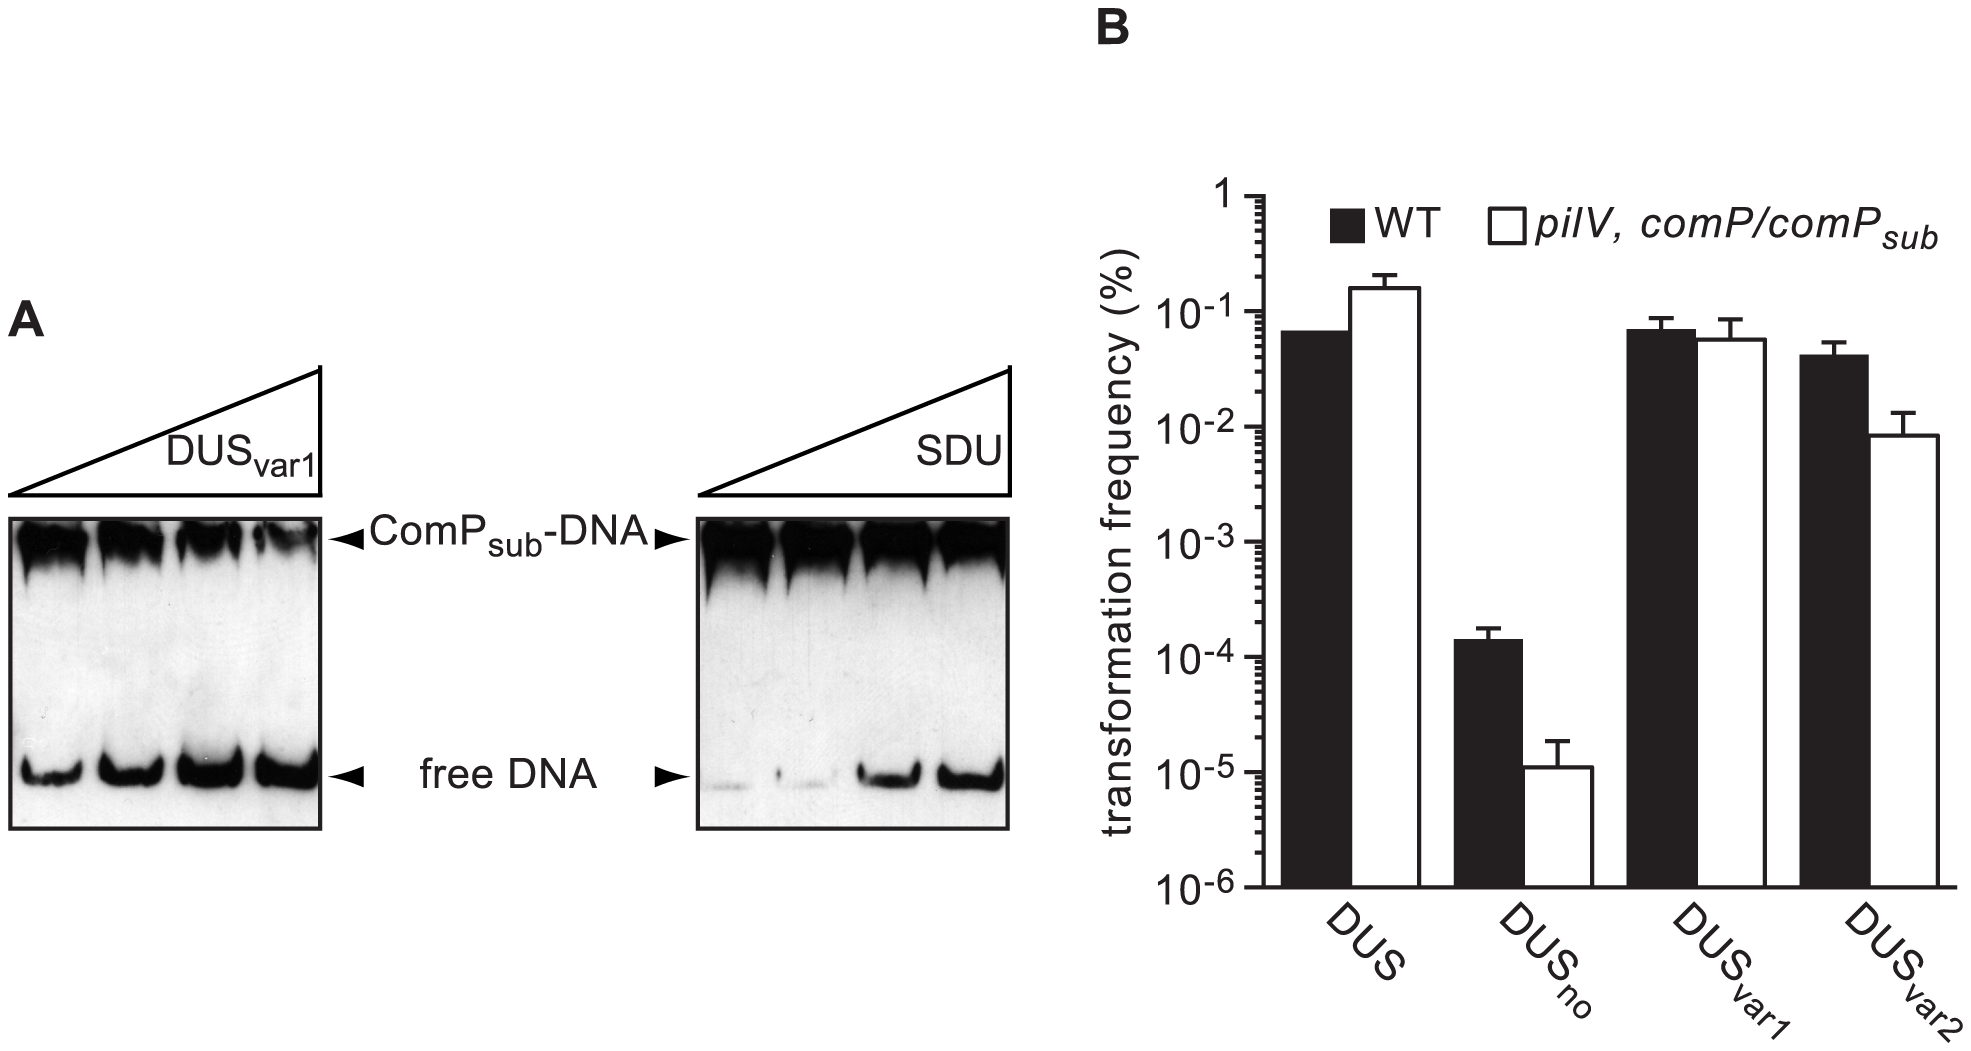 ComP homologs in other human <i>Neisseria</i> species are DNA receptors playing a similar role in transformation to meningococcal ComP.